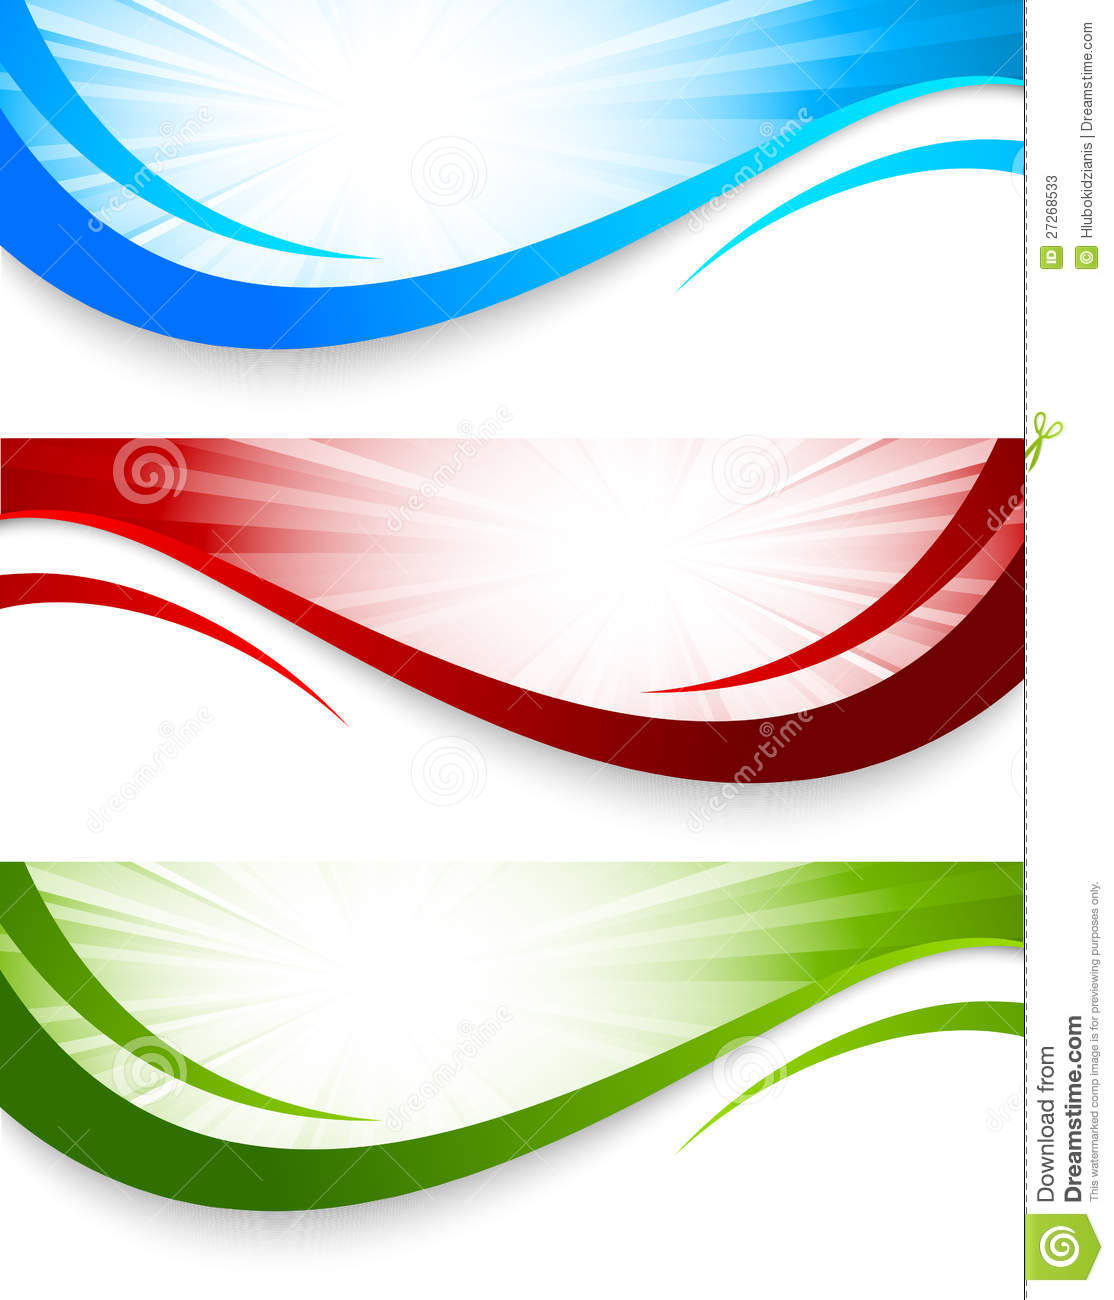 Set of wavy banners stock vector. Illustration of line ...